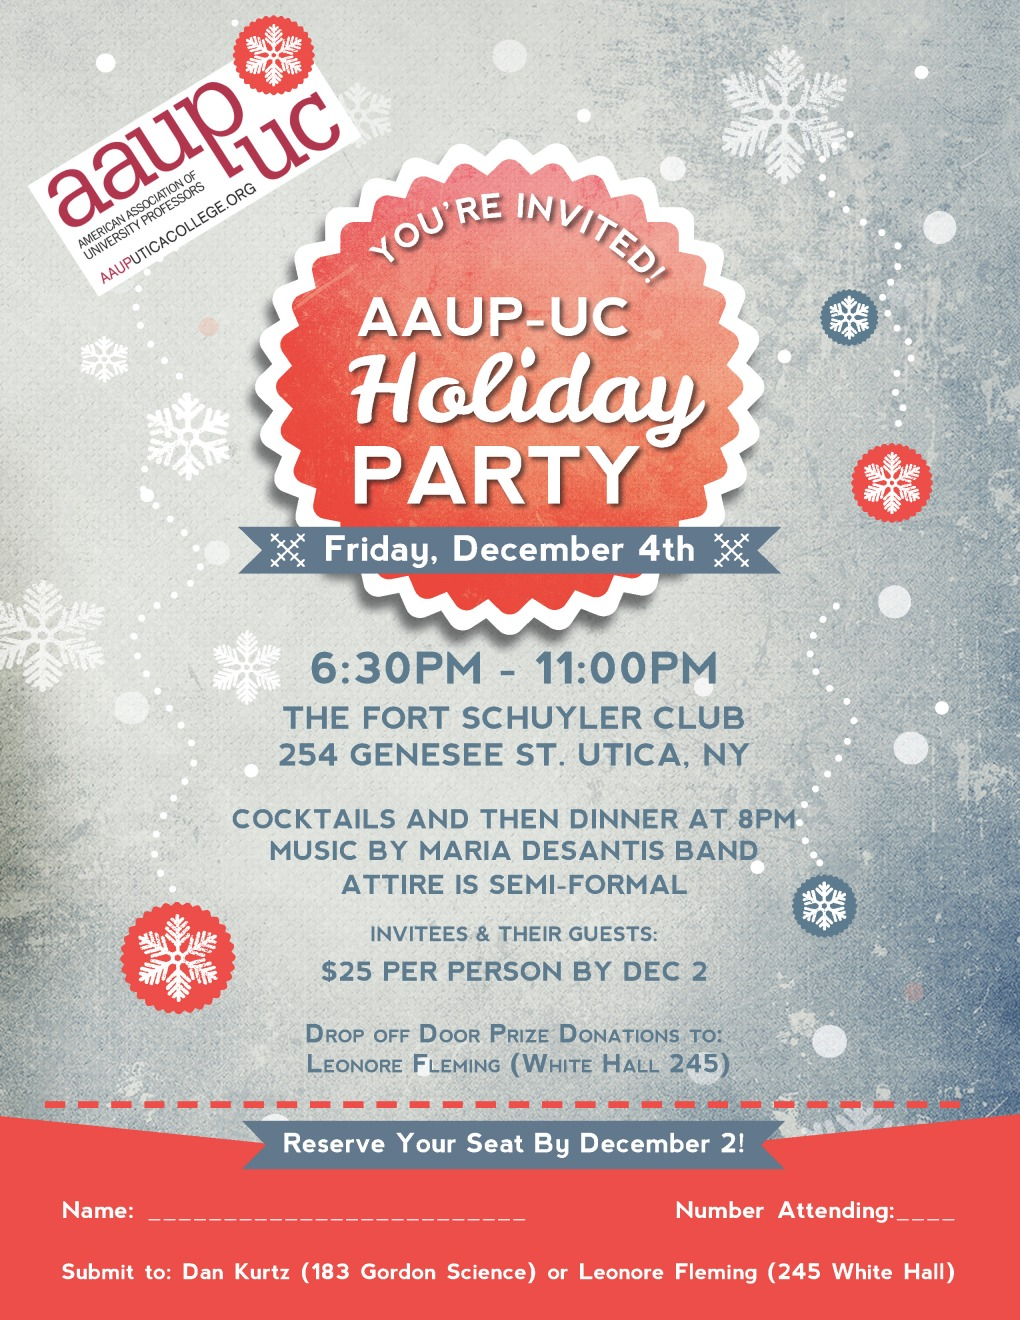 AAUP holiday party Flyer